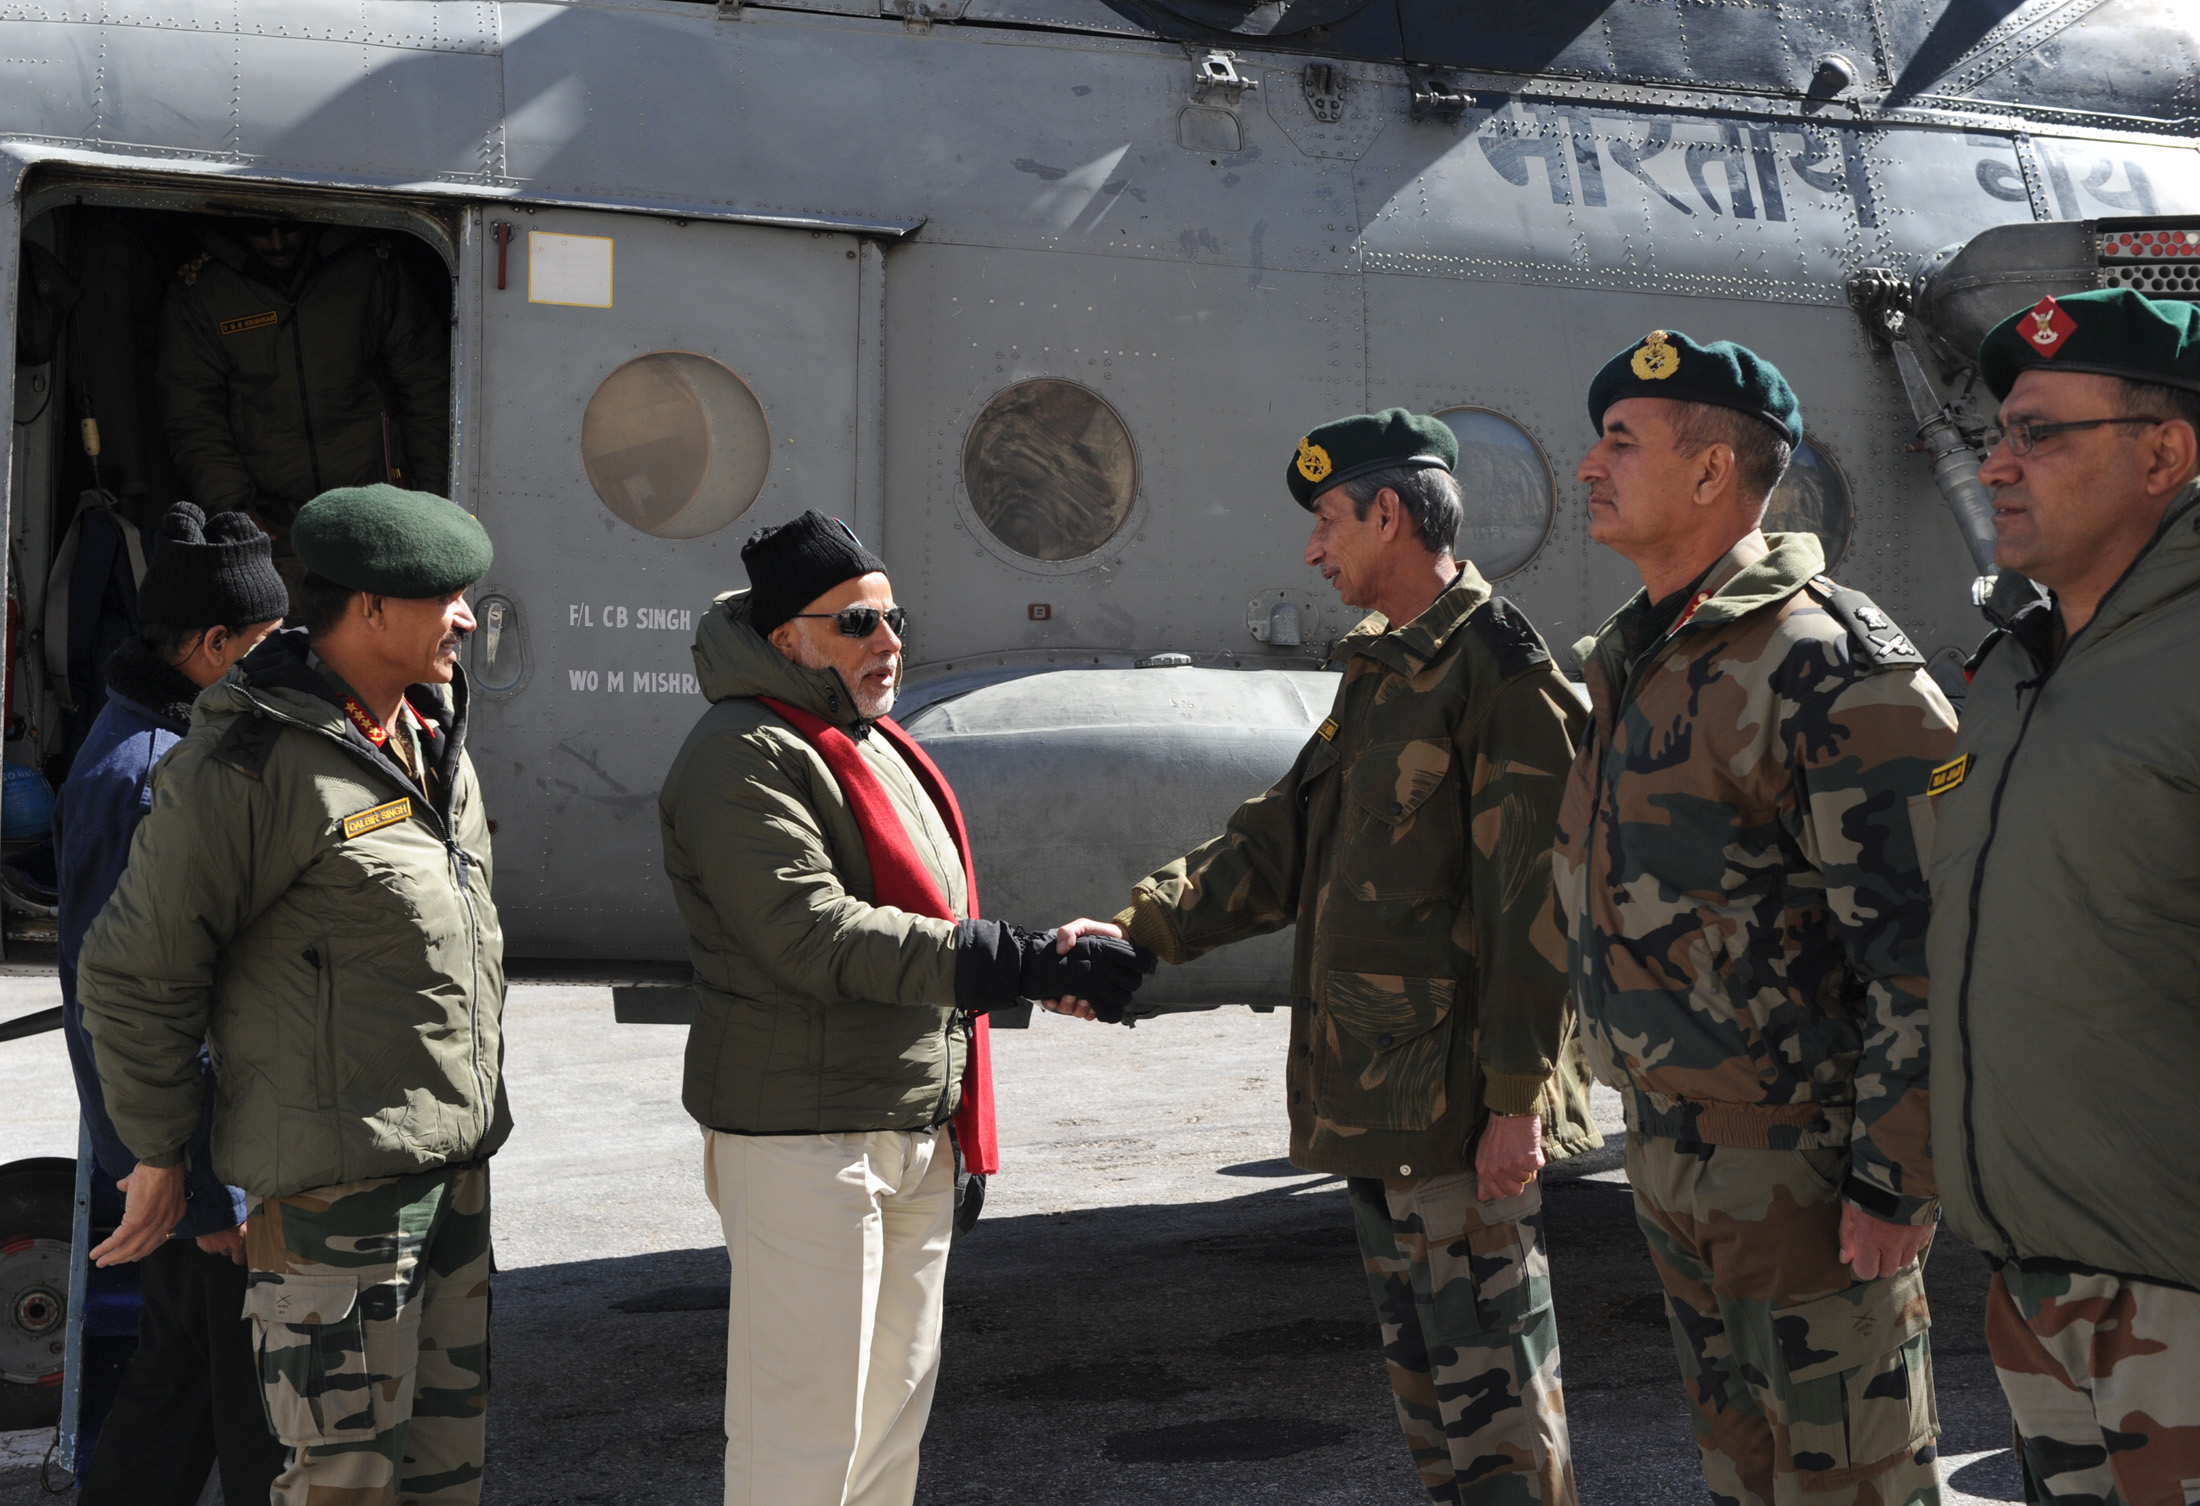 The Prime Minister, Shri Narendra Modi arrives at Siachen Base Camp, during his surprise visit to Siachen on October 23, 2014.